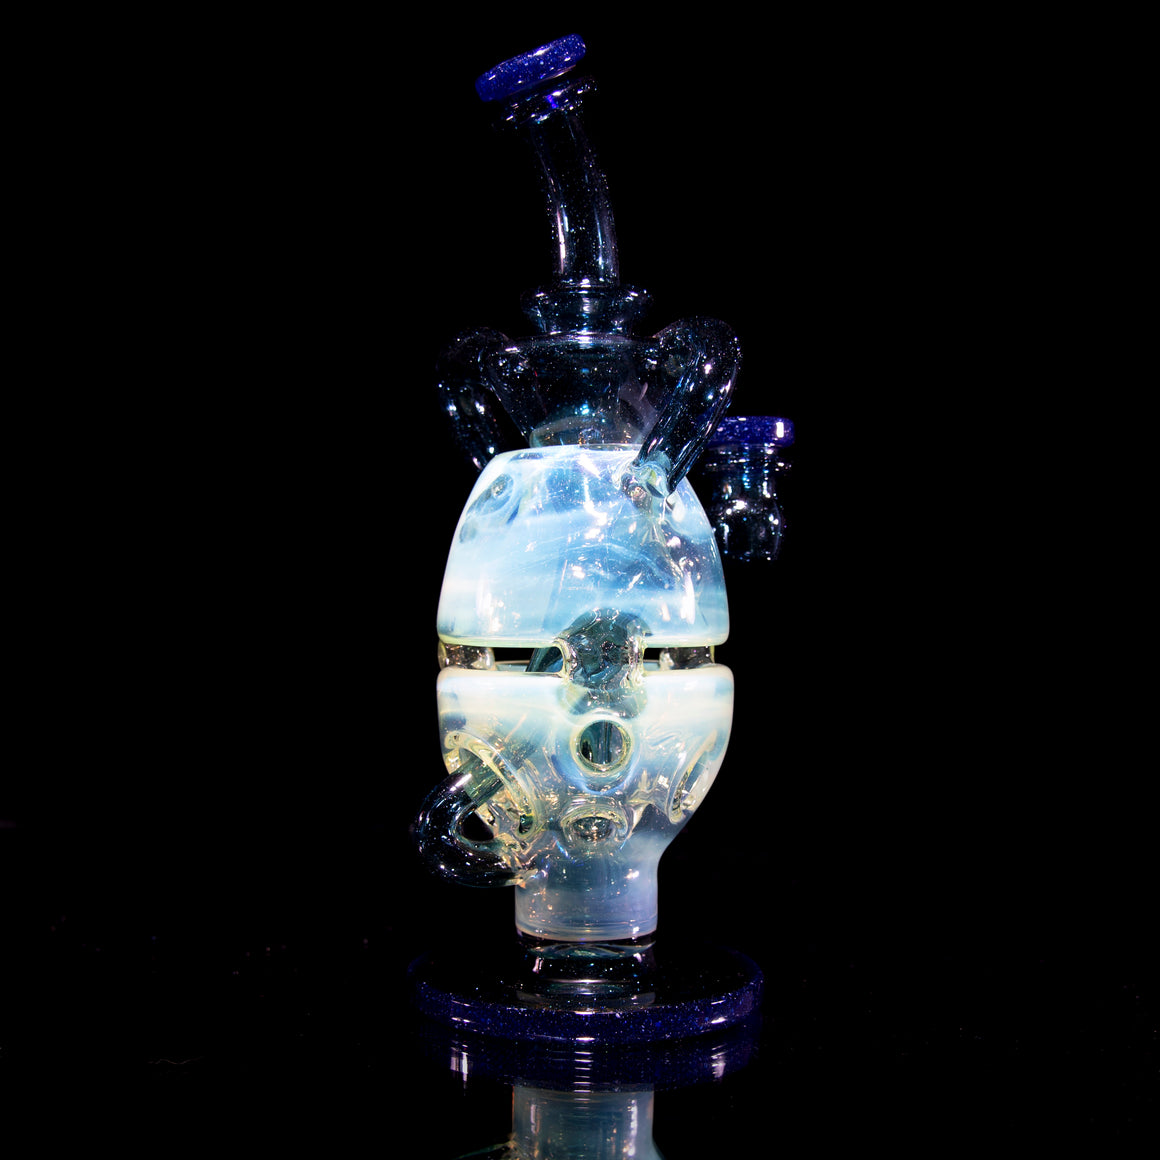 Double-Uptake Faberge Egg Klein Recycler  - Blue Blizzard/Blue Stardust/Slyme - 14mm Female